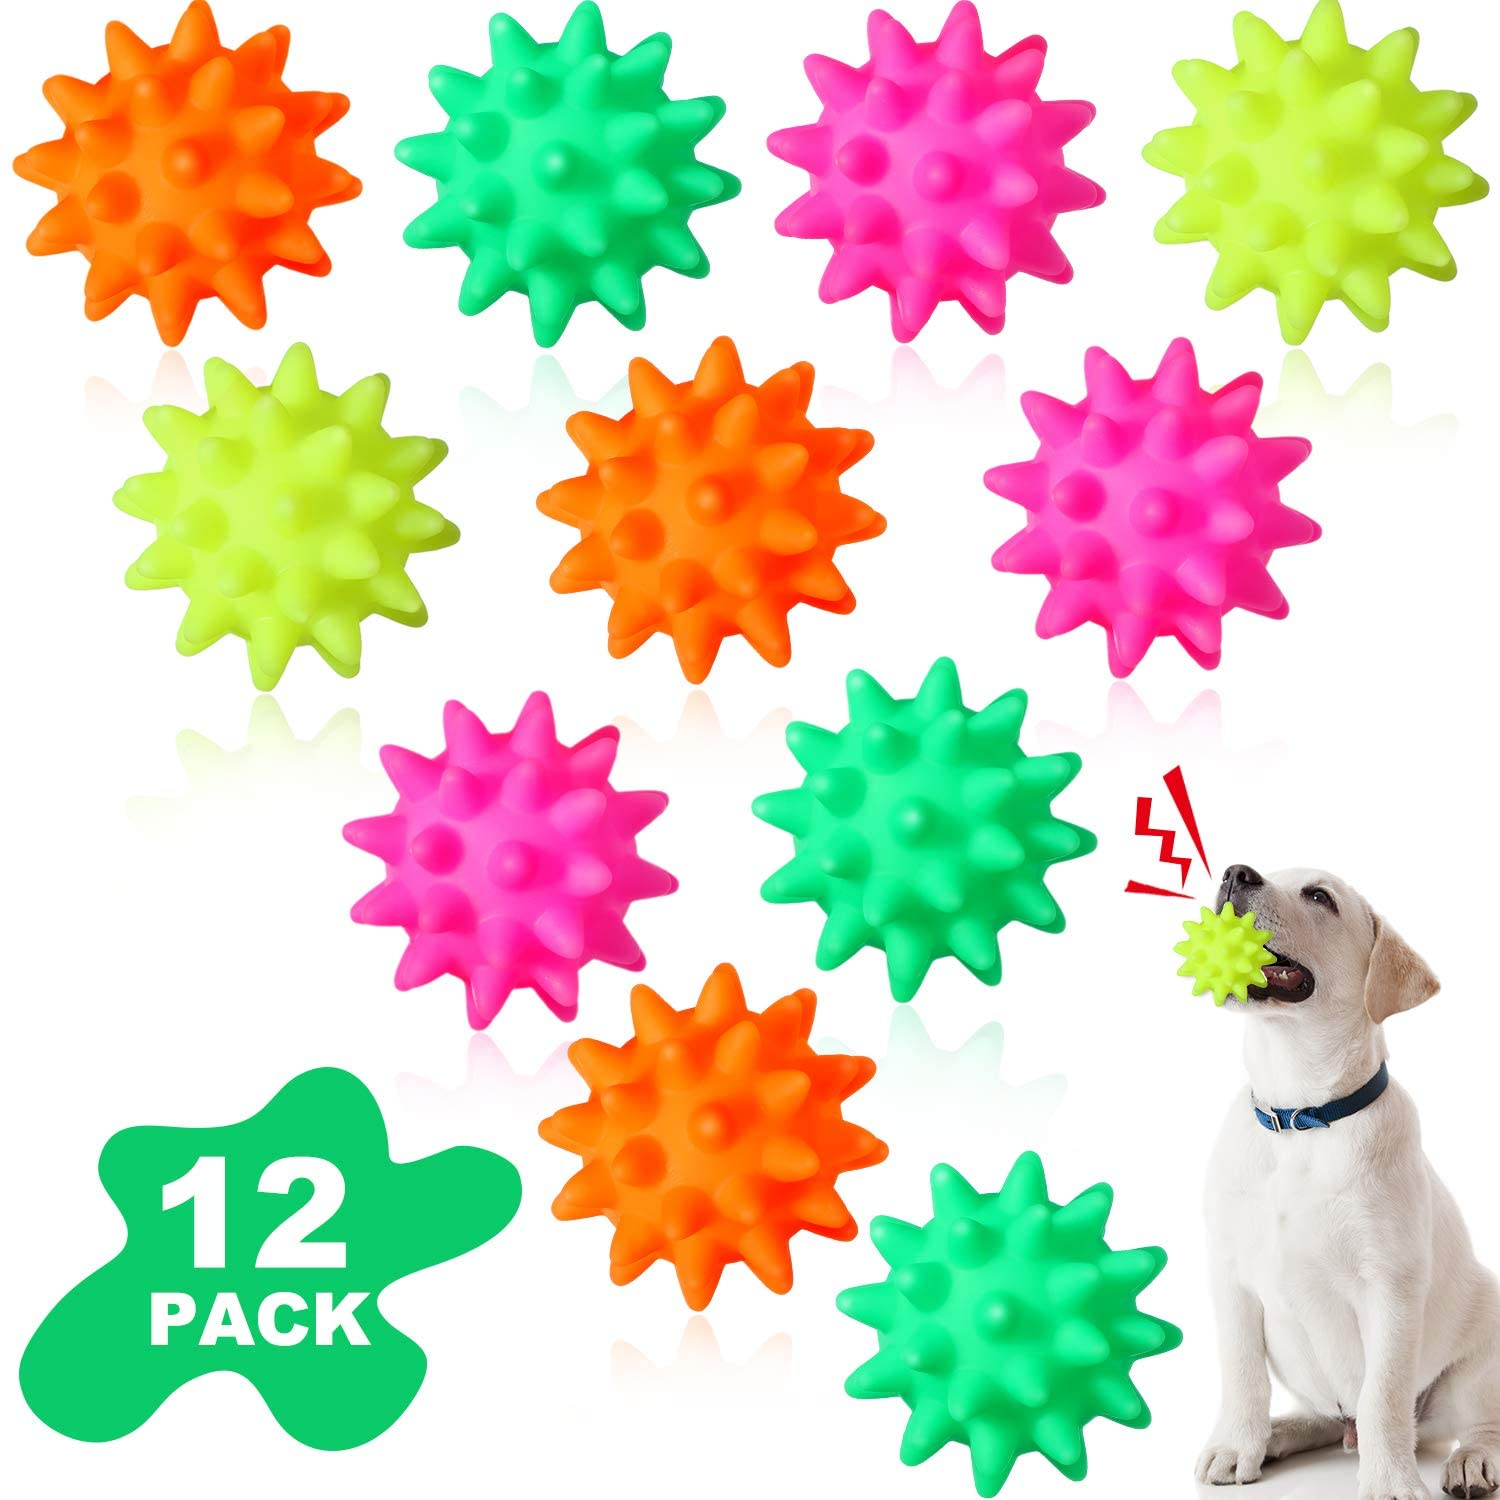 Gejoy 12 Pieces Spiky Pet Ball Squeaker Balls Puppy Toys TPR Dog Chew Ball Bright Color Puppy Teething Toys